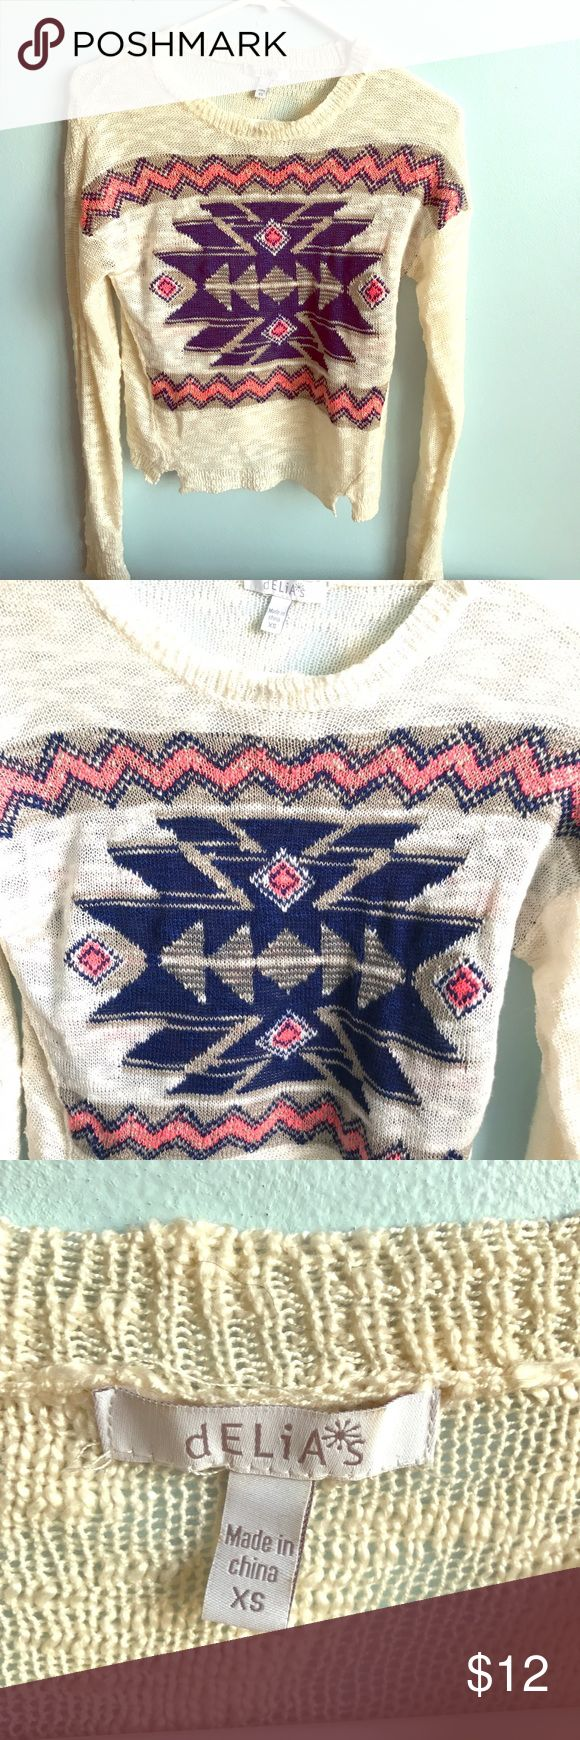 Tribal print sweater Super cute sweater. It is see thru. There is navy, coral, and white on the cream sweater. Only wore it once. It looks great in the spring and summer being so lightweight American Eagle Outfitters Sweaters Crew & Scoop Necks